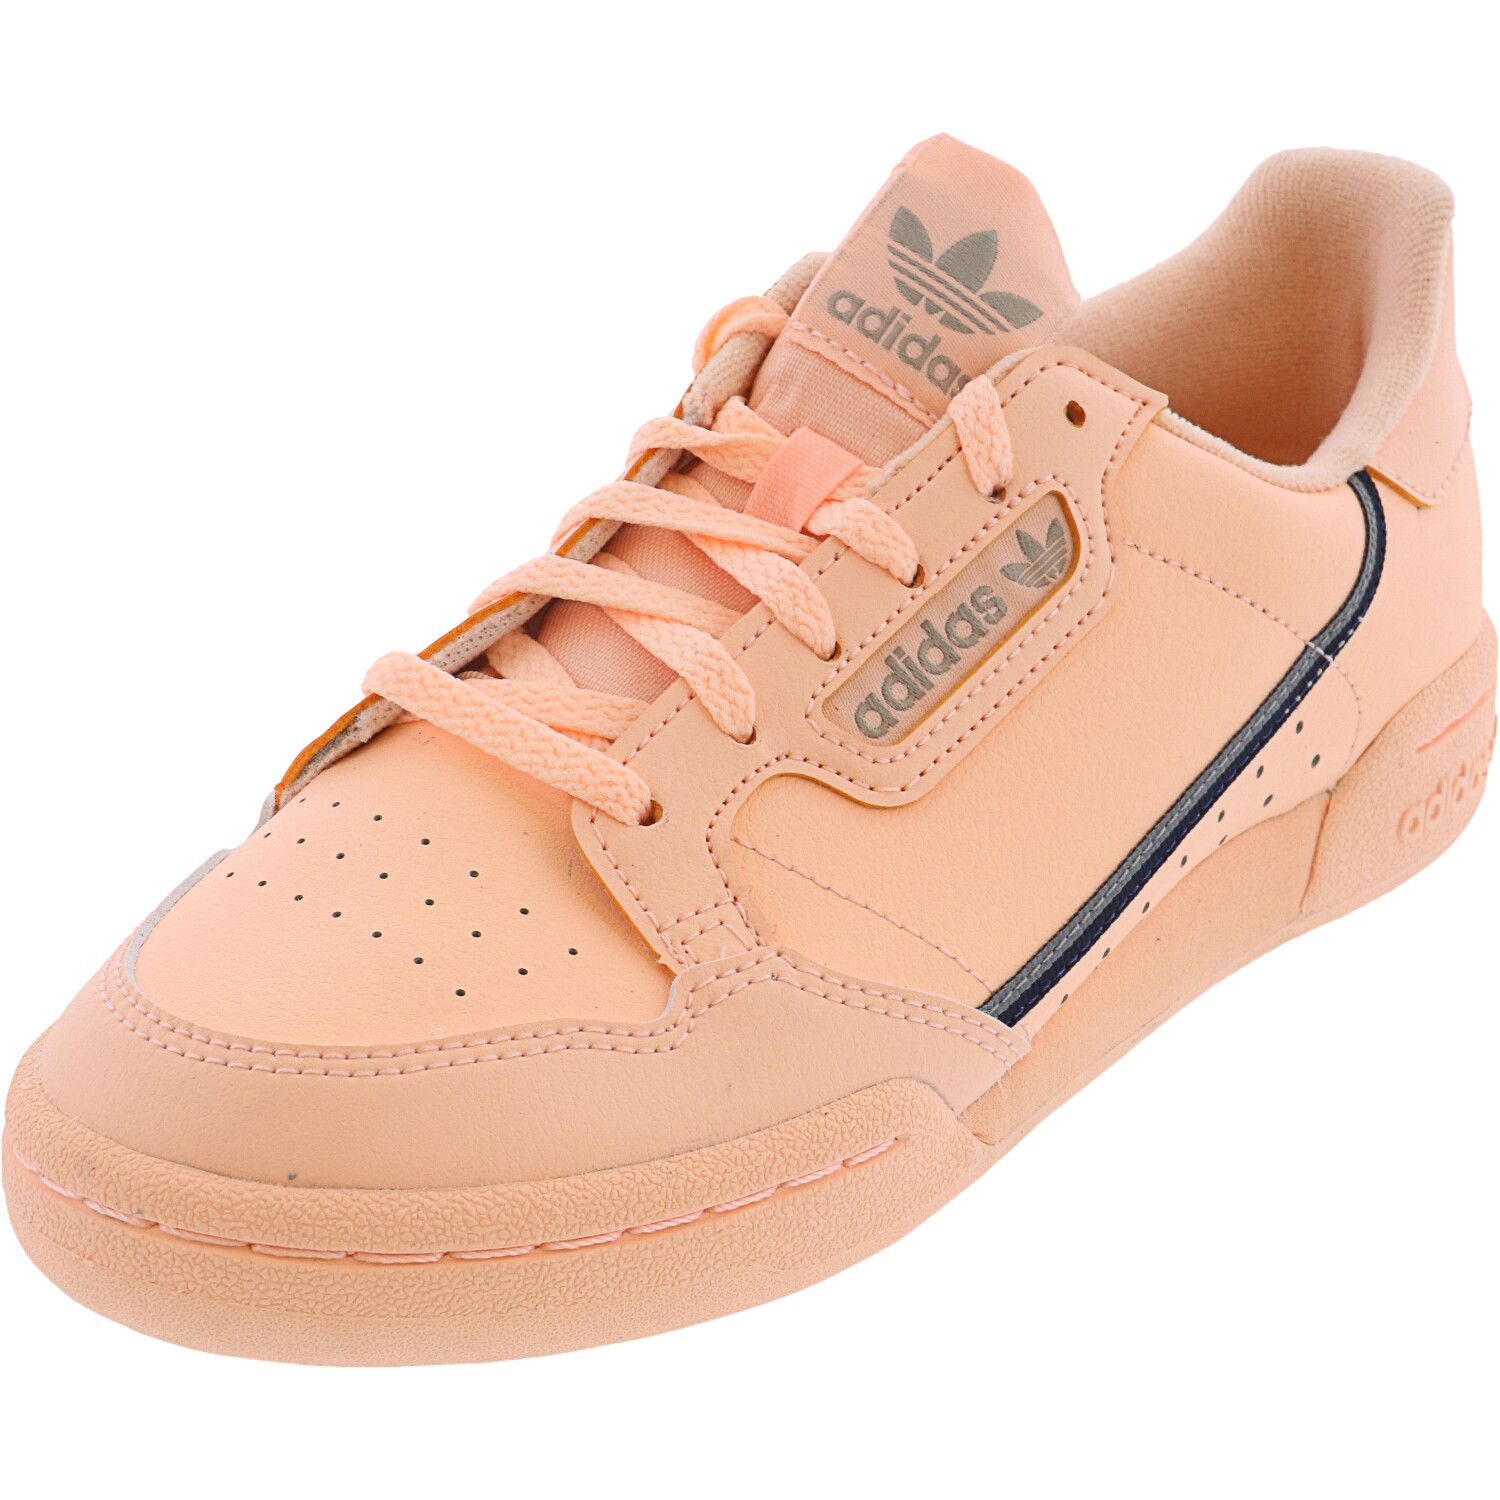 Adidas Girl's Continental 80 Clear Orange / Light Brown Ecru Tint Low Top Leather Training Shoes - 4.5M